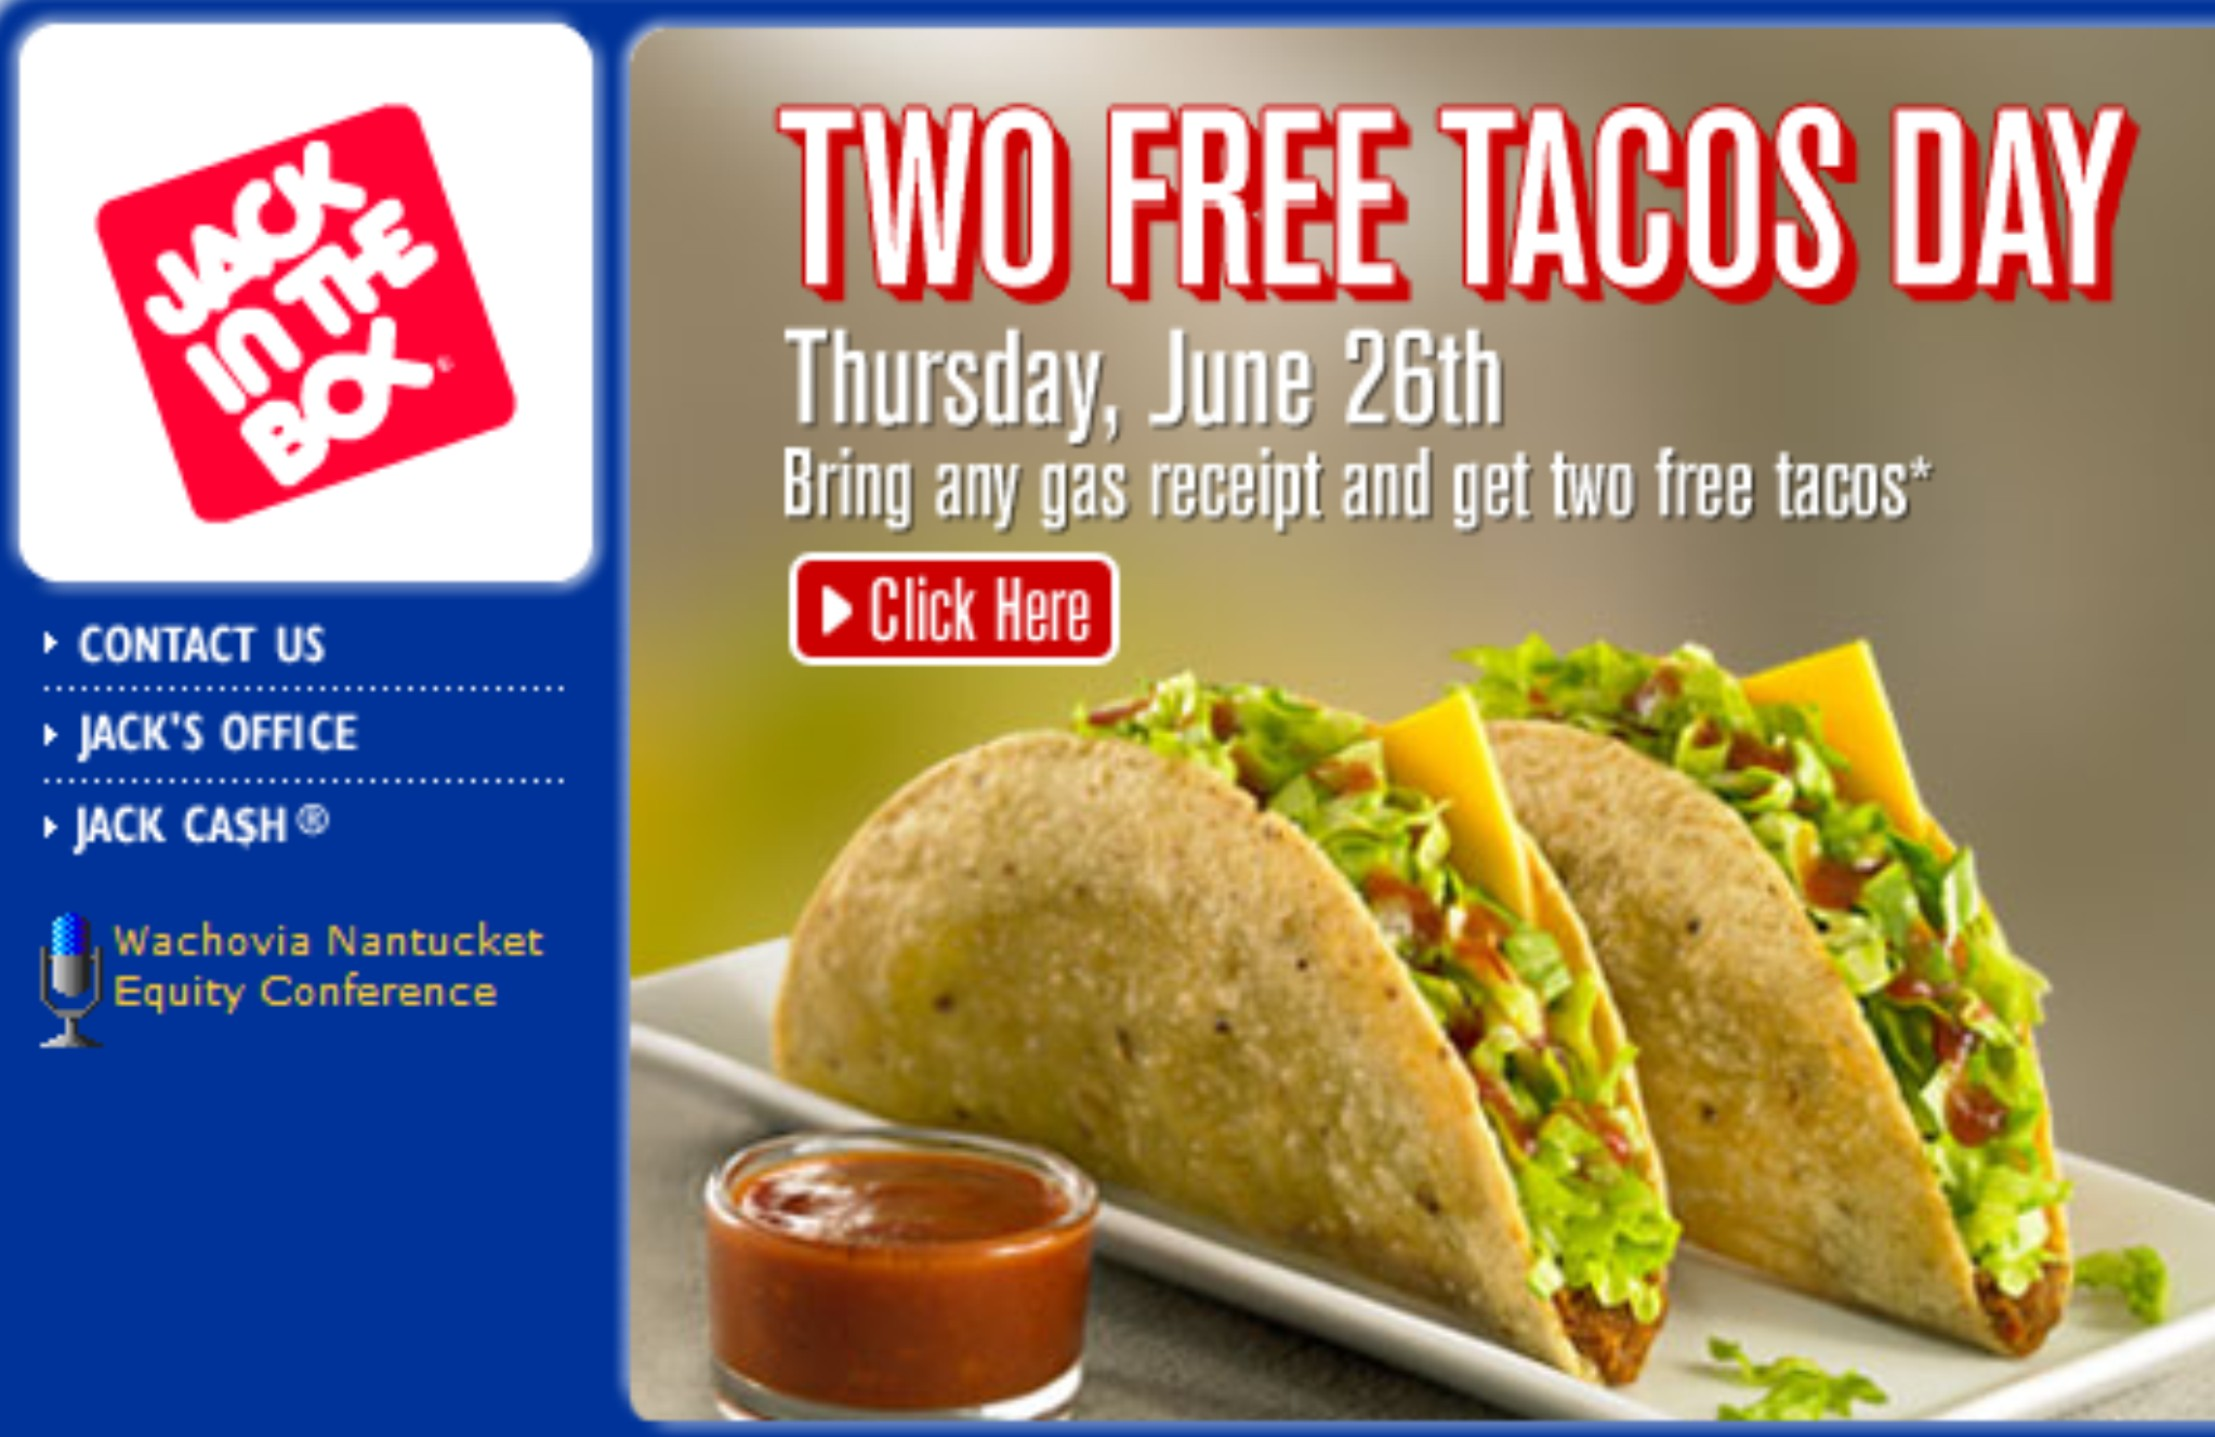 jack in the box coupons free tacos - coupon bond wikipedia